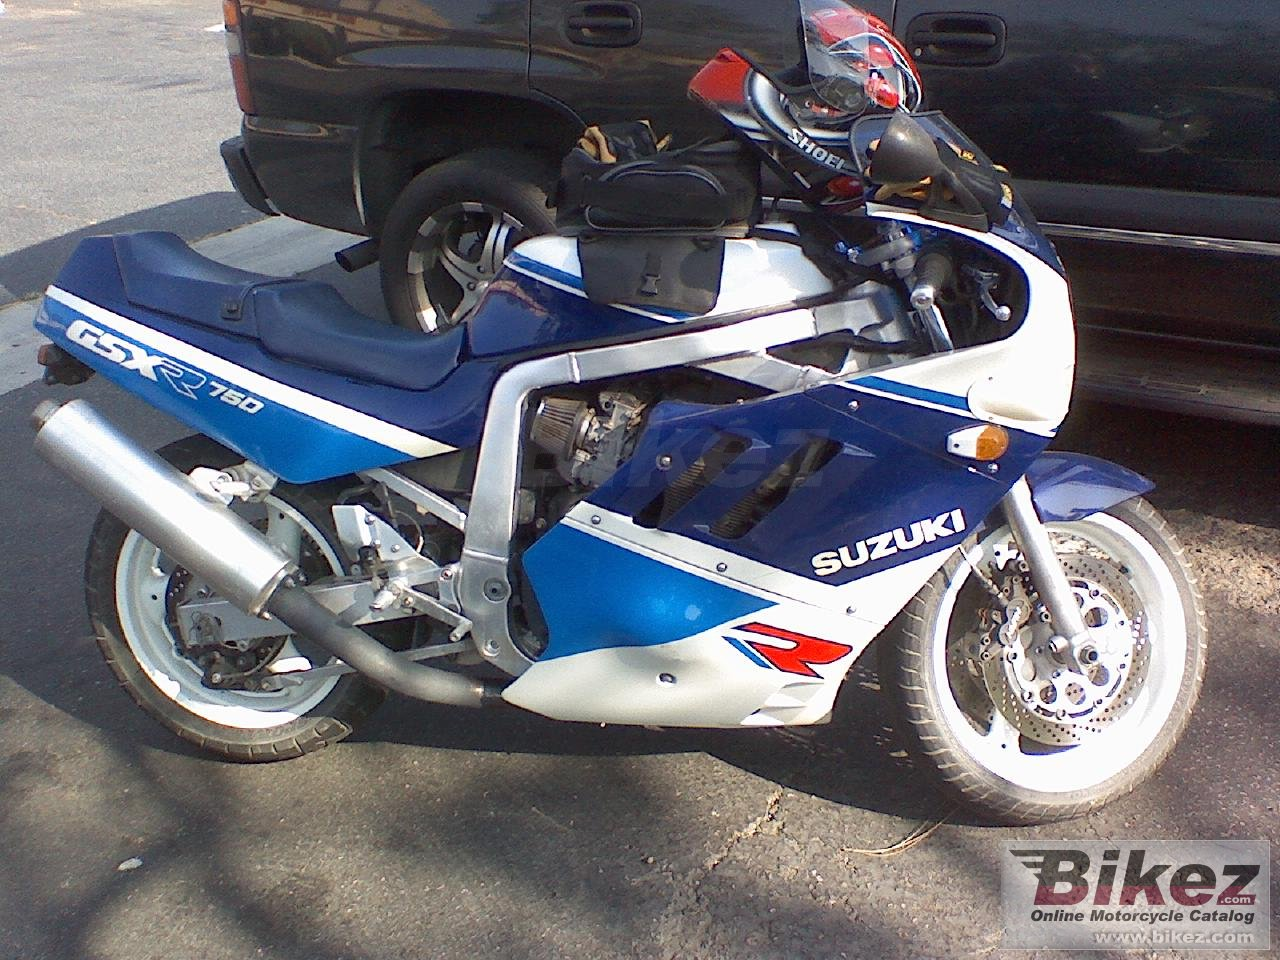 Big  gsx-r 750 r picture and wallpaper from Bikez.com